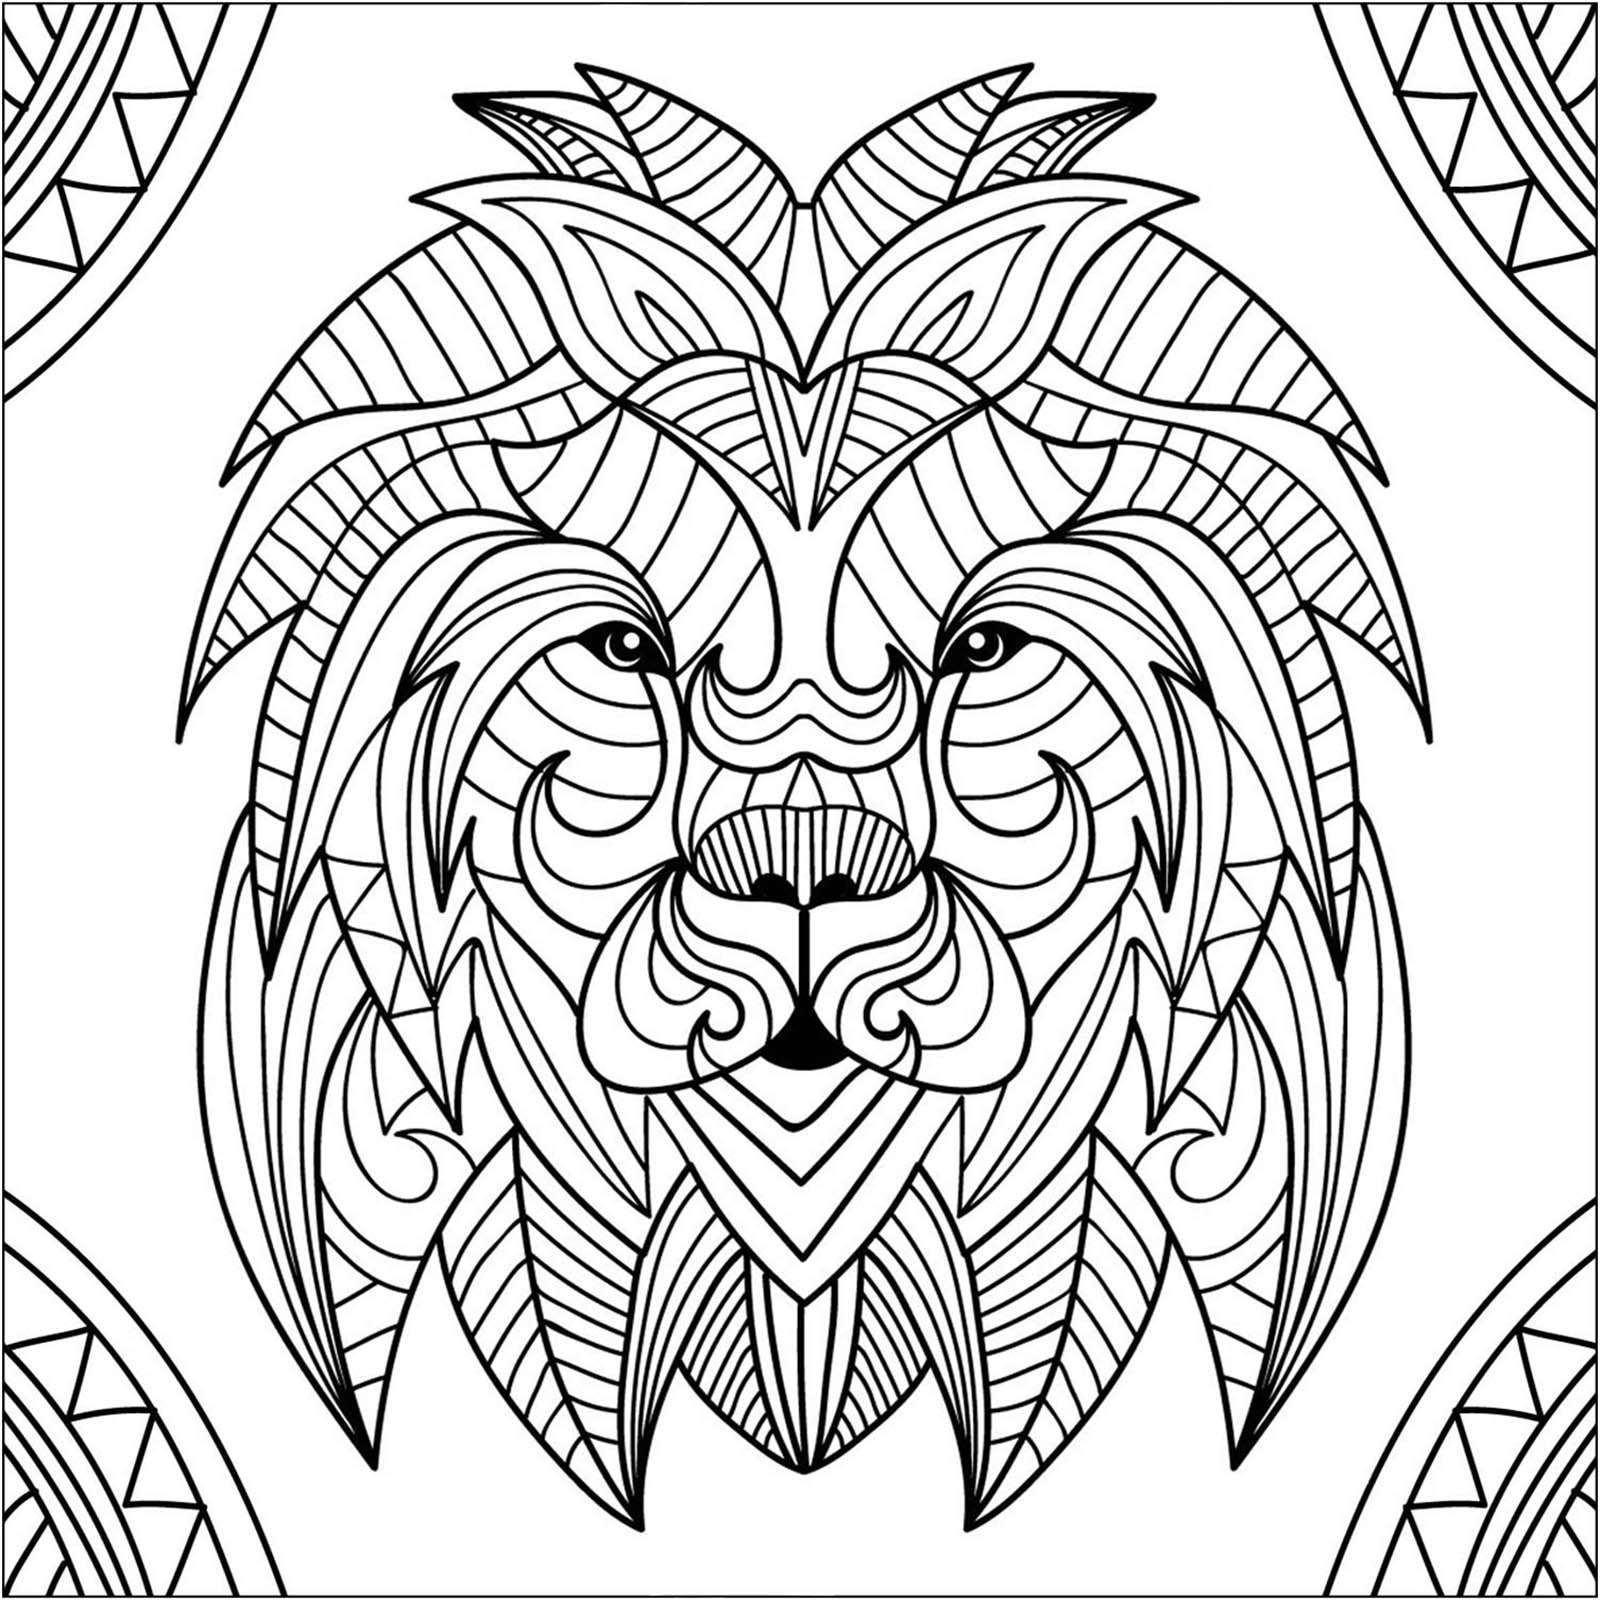 coloring lion color lion coloring pages clipart and other free printable coloring lion color